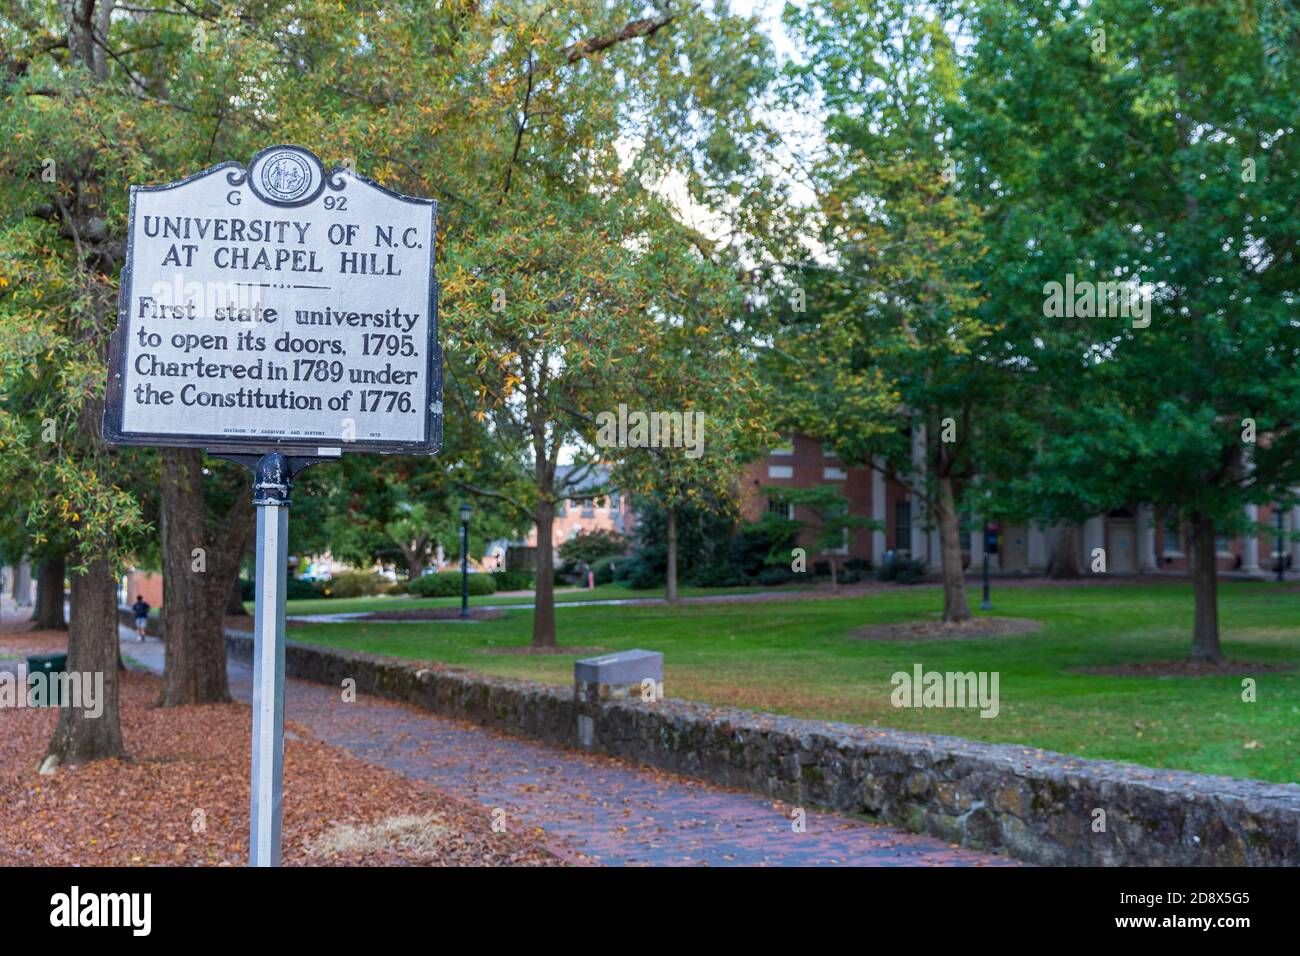 Chapel Hill, NC / USA - October 22, 2020: University of North Carolina at Chapel Hill, UNC,  historical marker, marking its open in 1795 Stock Photo